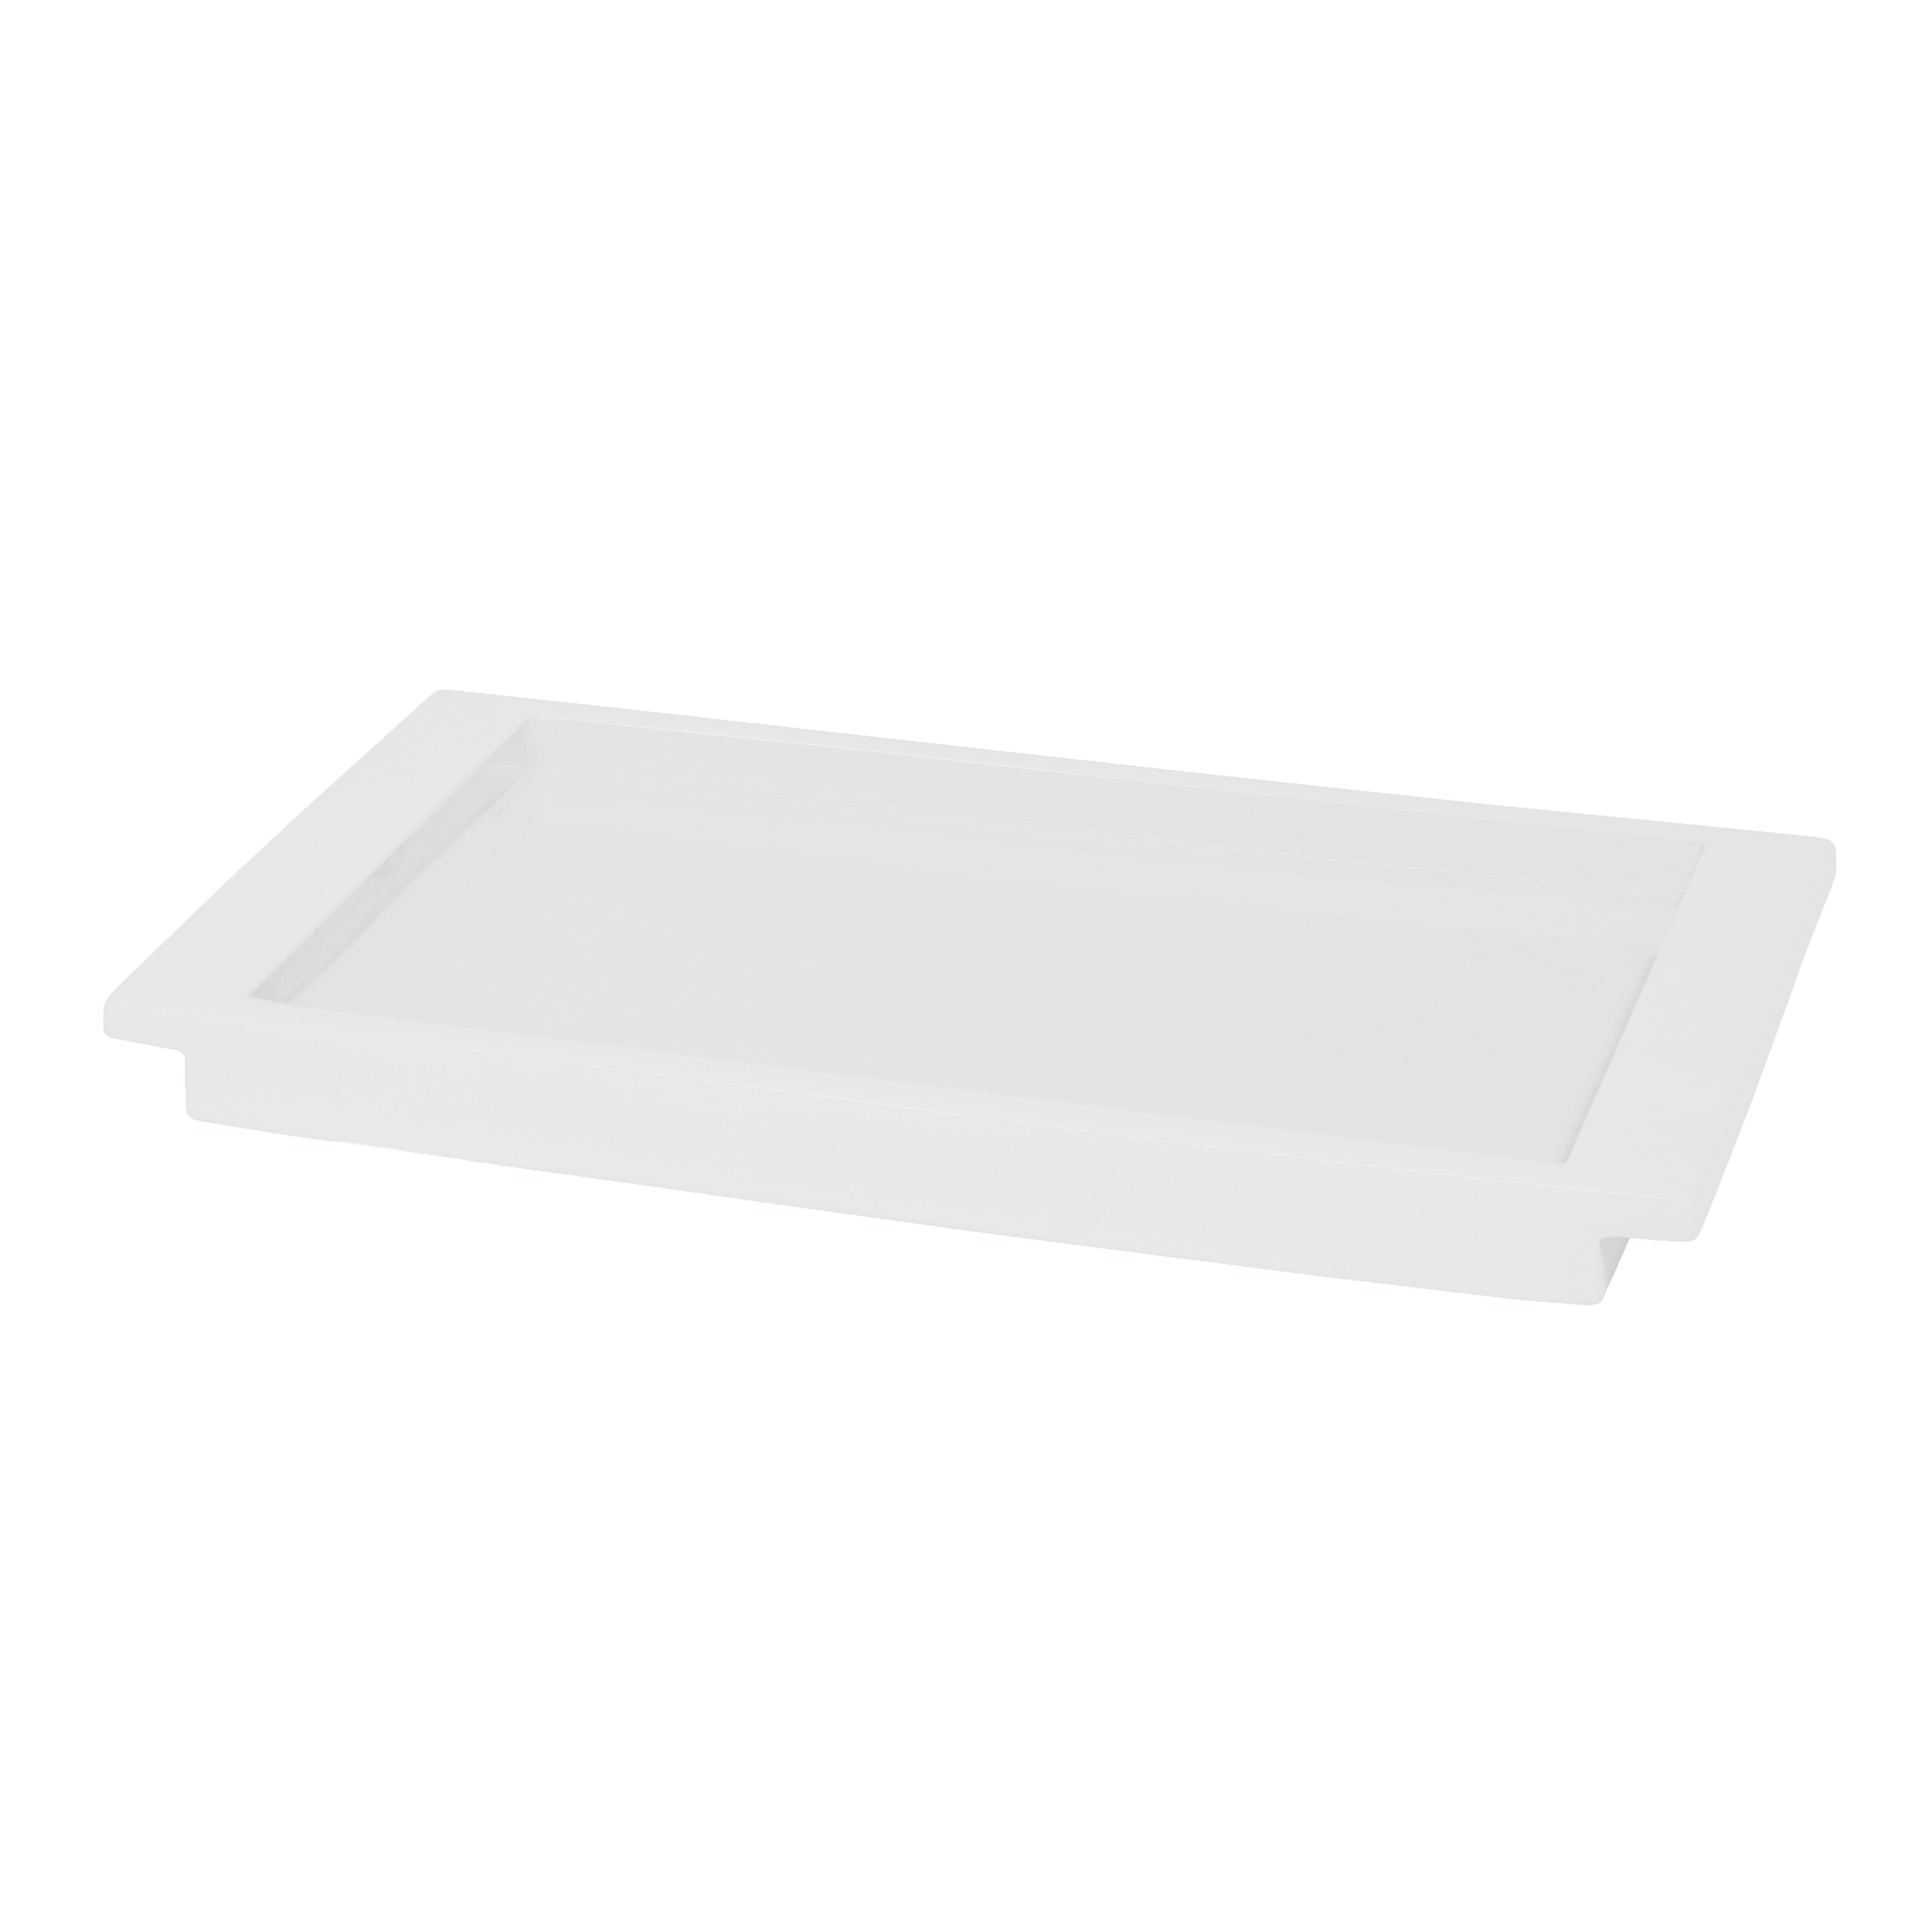 Shop Solid Lacquer White Bath Accessory Collection - Free Shipping ...